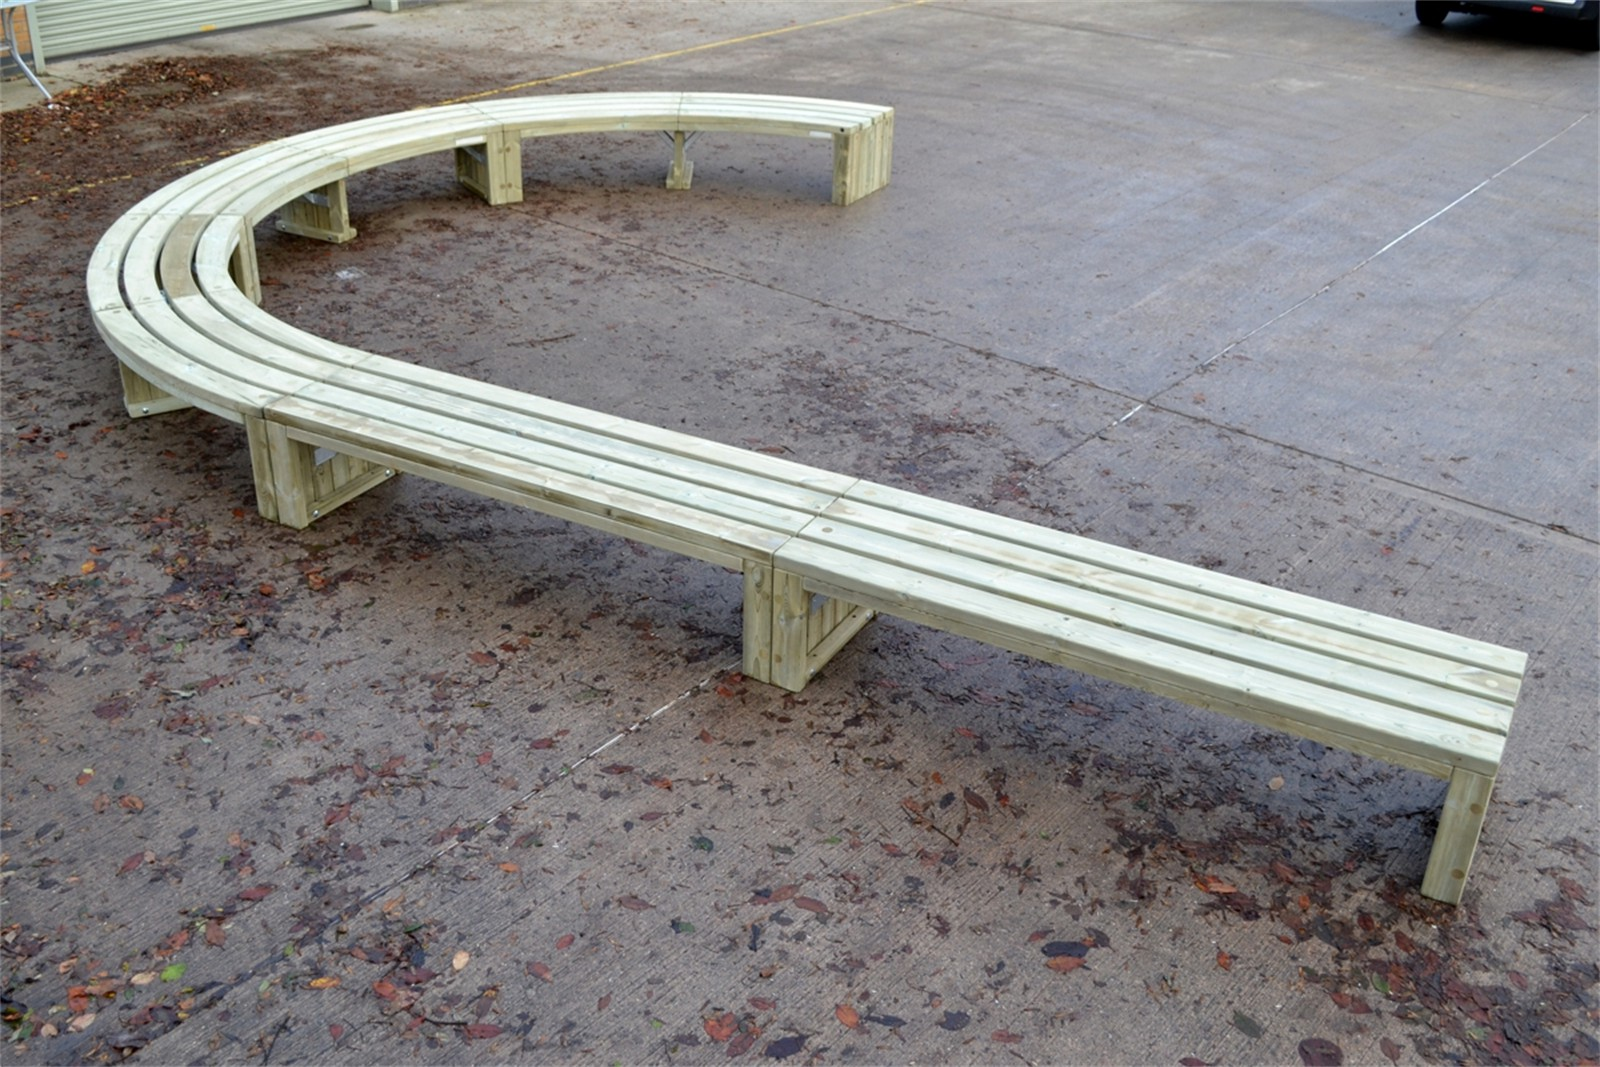 76sro34 - Rochford 565 straight and curved long bench